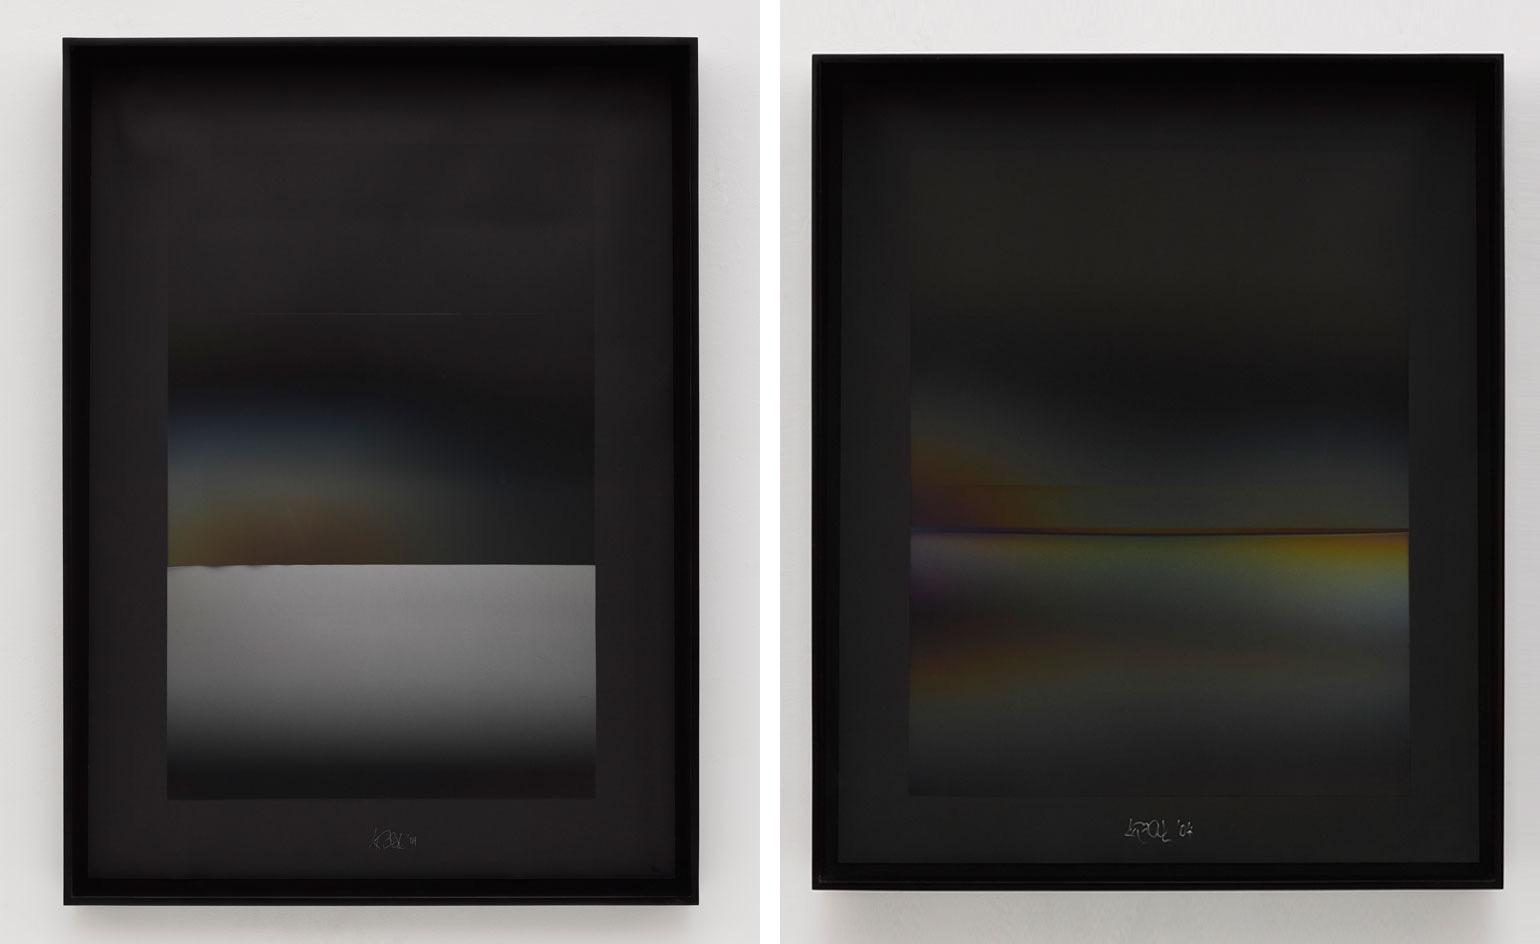 Larry Bell: NVD#24 (left) and NVD#28 (right), both 2004, (Black Arches Paper coated with aluminum and silicon monoxide, 57 x 41 in.). Photography by White Cube (George Darrel)